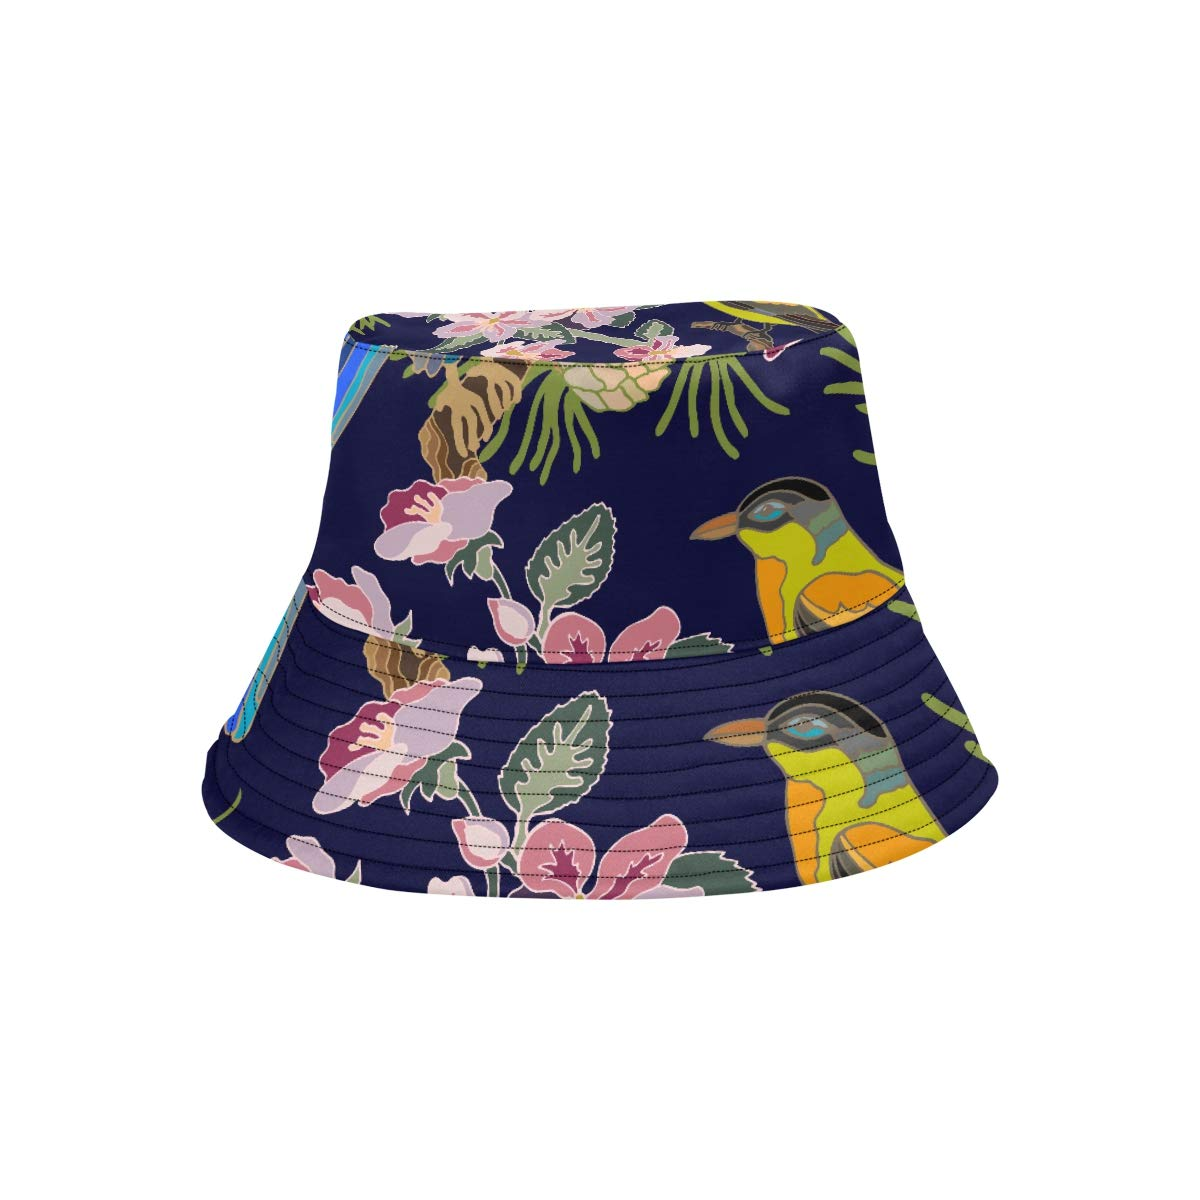 Kawaii Japanese Garden Flowers and Birds New Summer Unisex Cotton Fashion Fishing Sun Bucket Hats for Kid Teens Women and Men with Customize Top Packable Fisherman Cap for Outdoor Travel